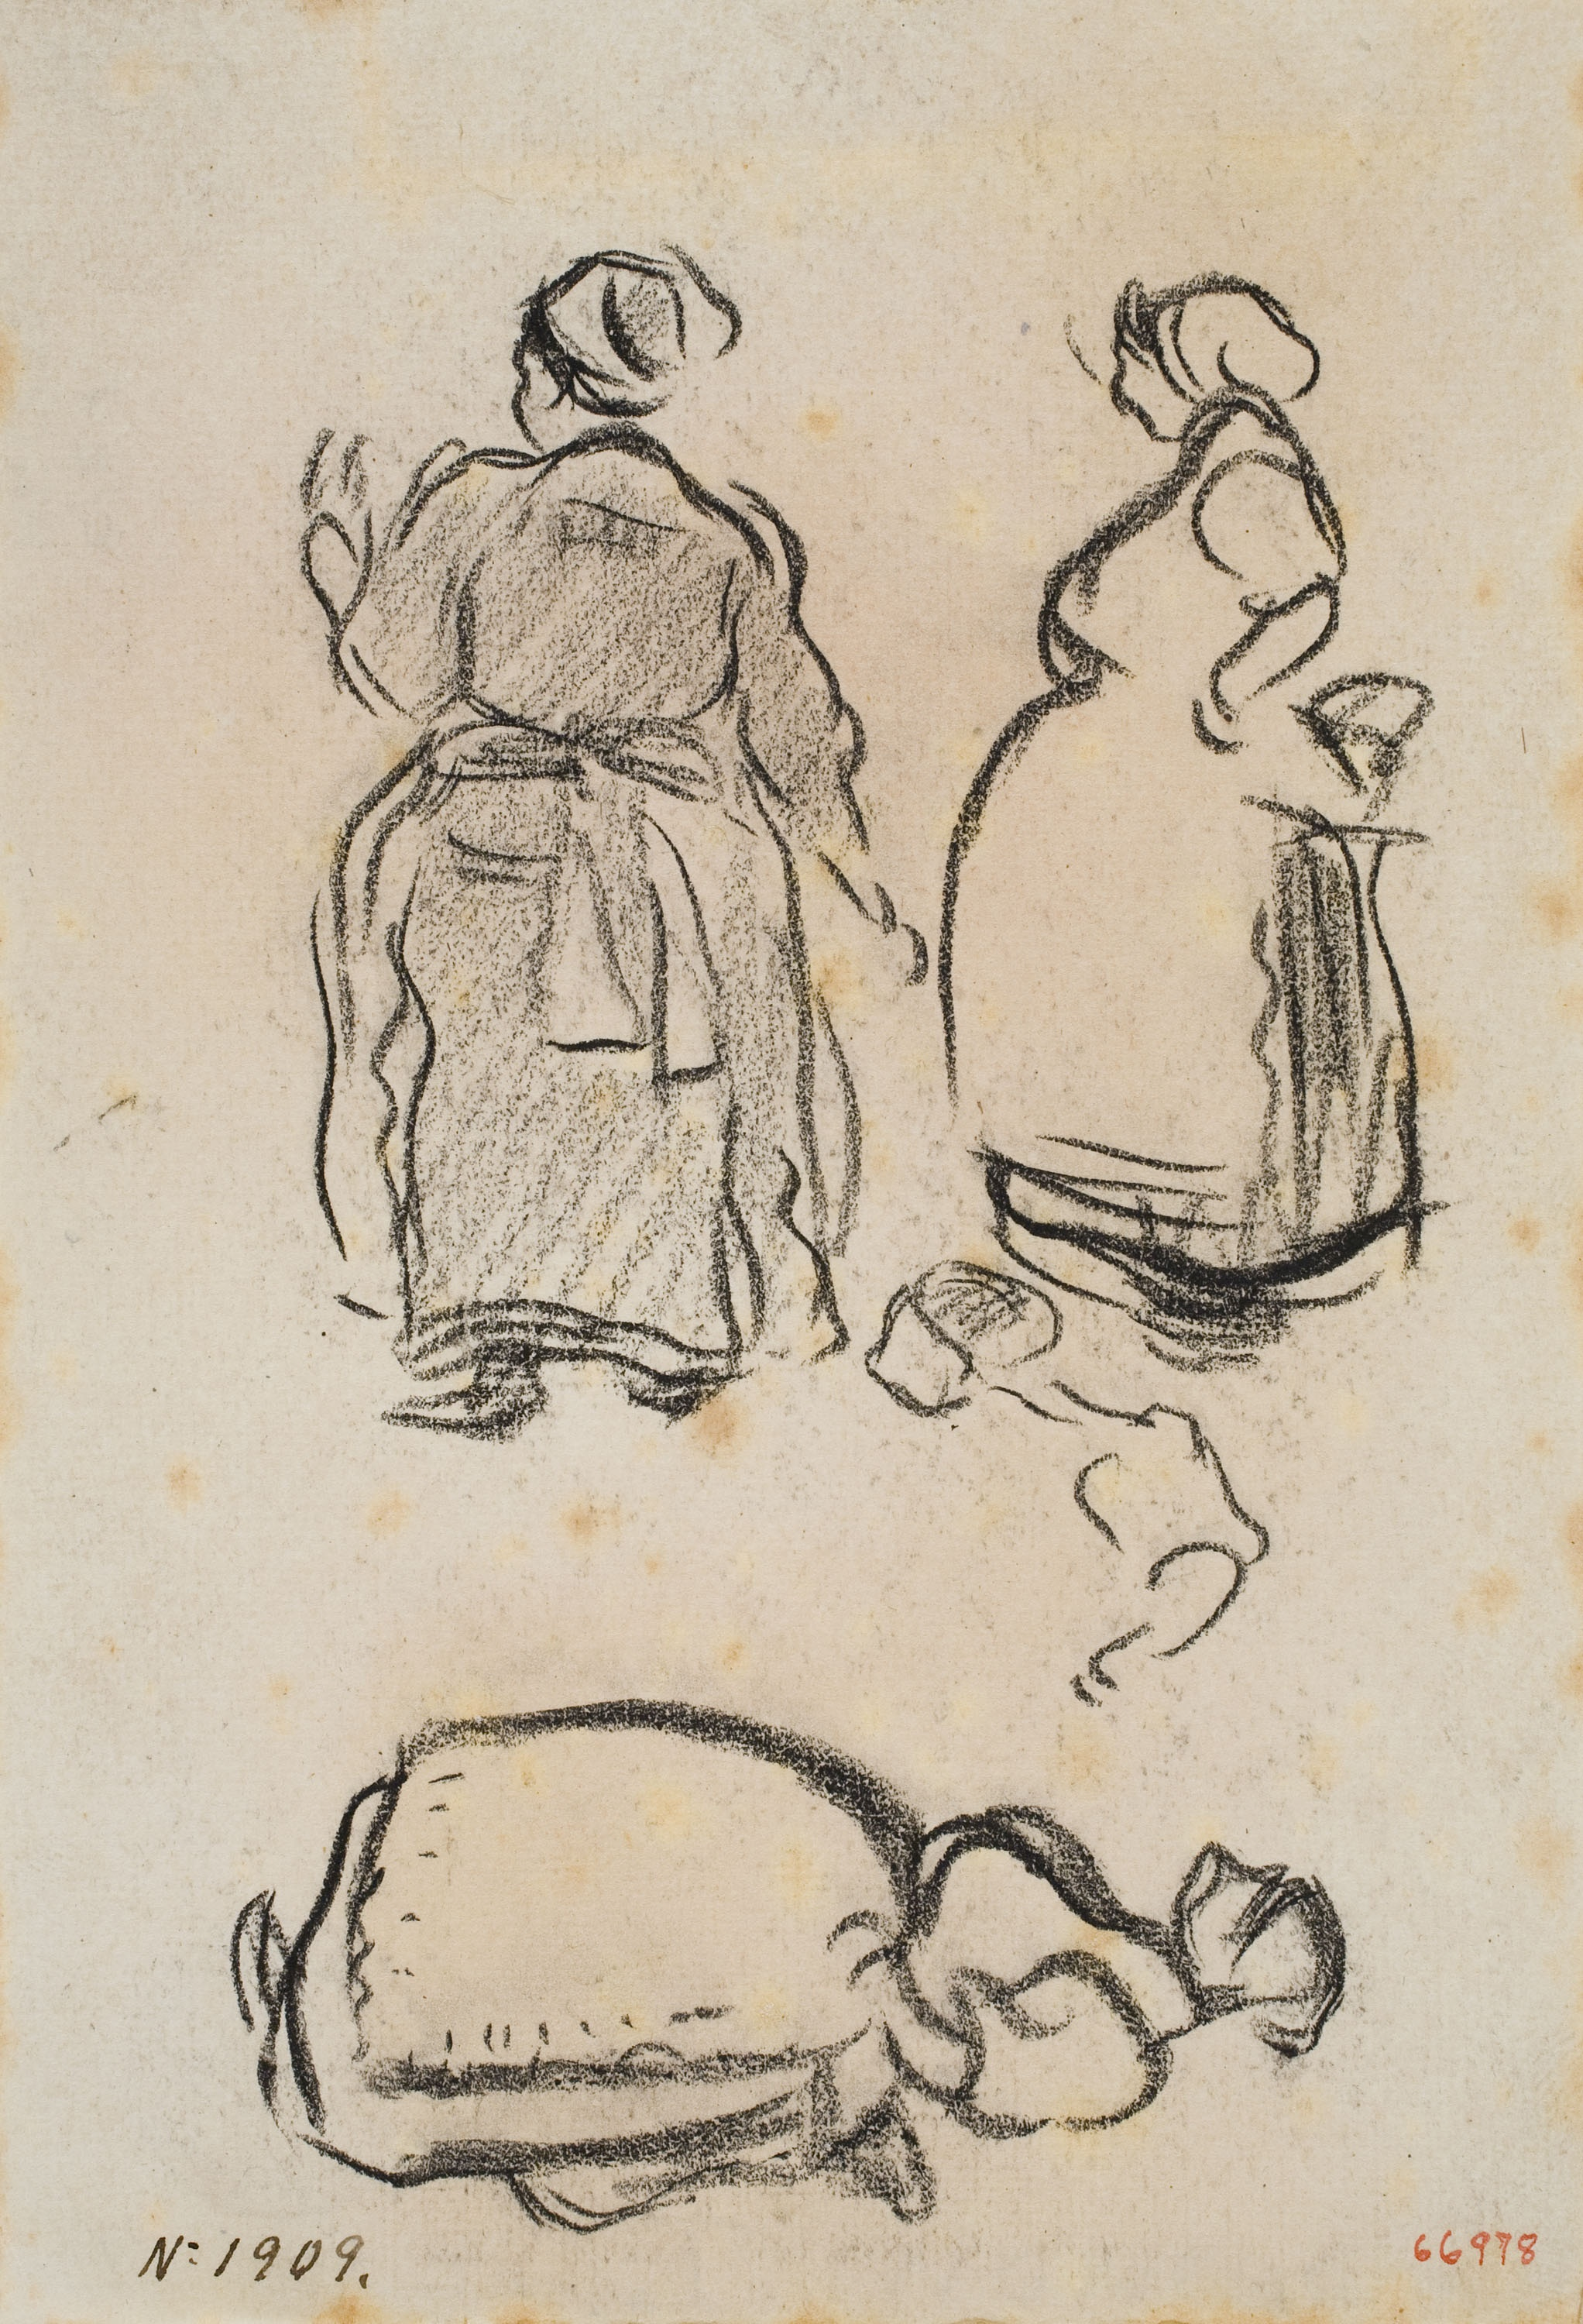 Isidre Nonell - Sketch of women - Circa 1894